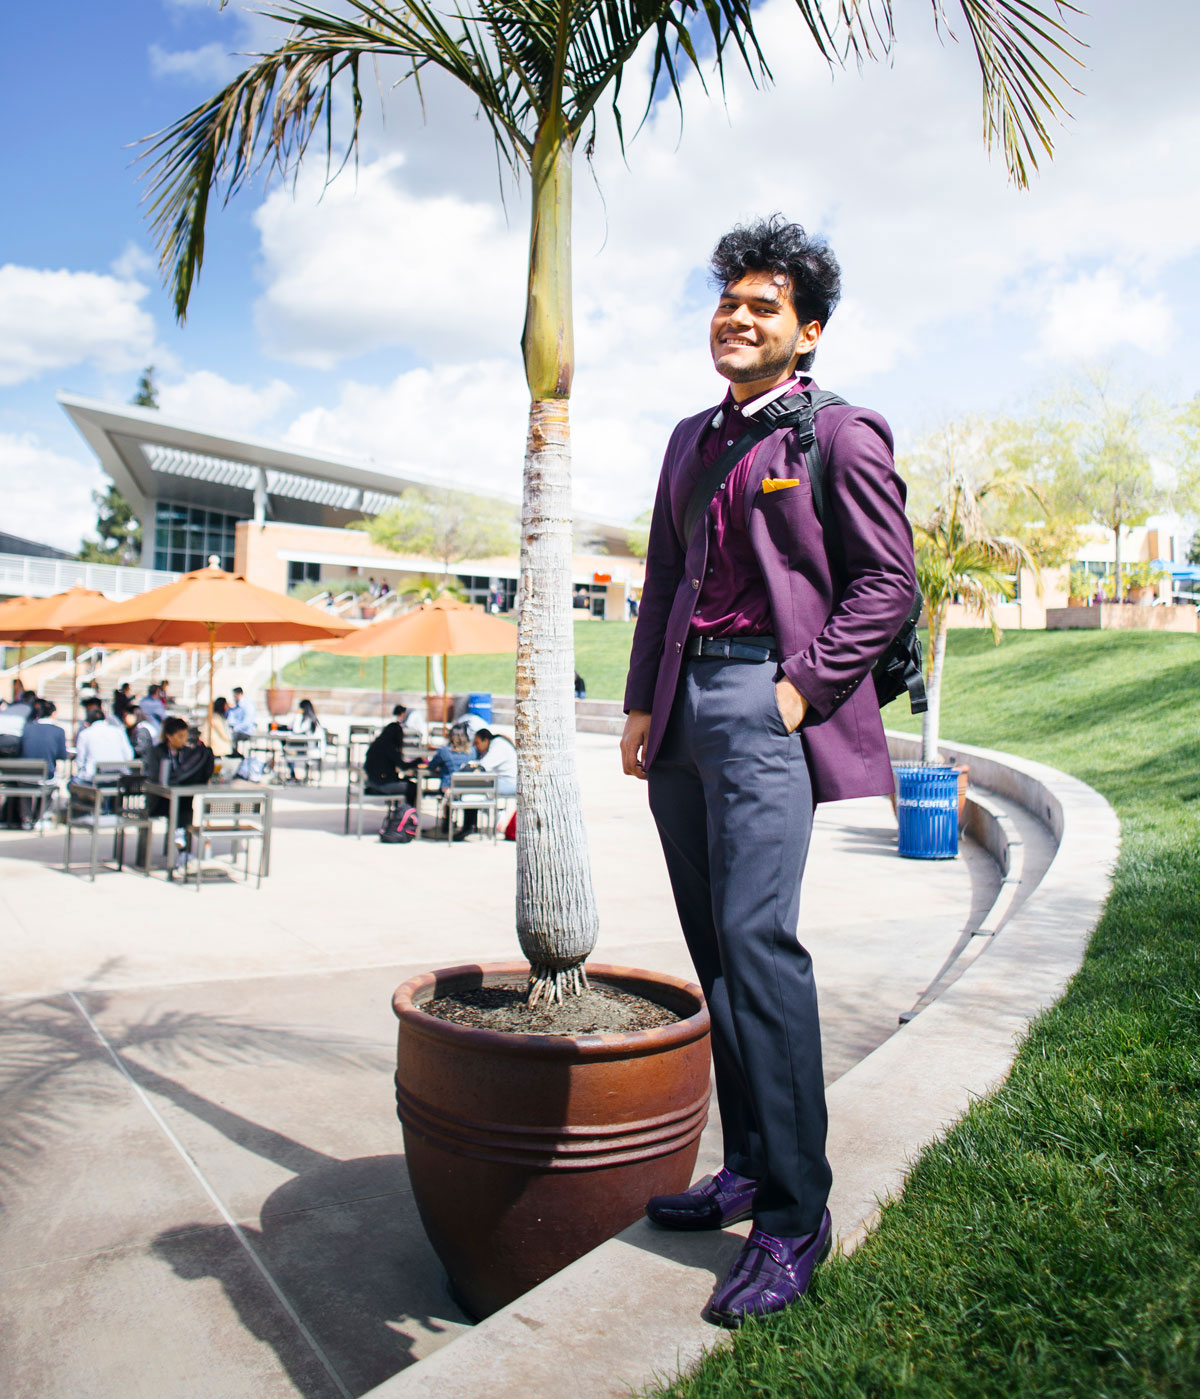 Man in purple suit poses for picture under palm tree